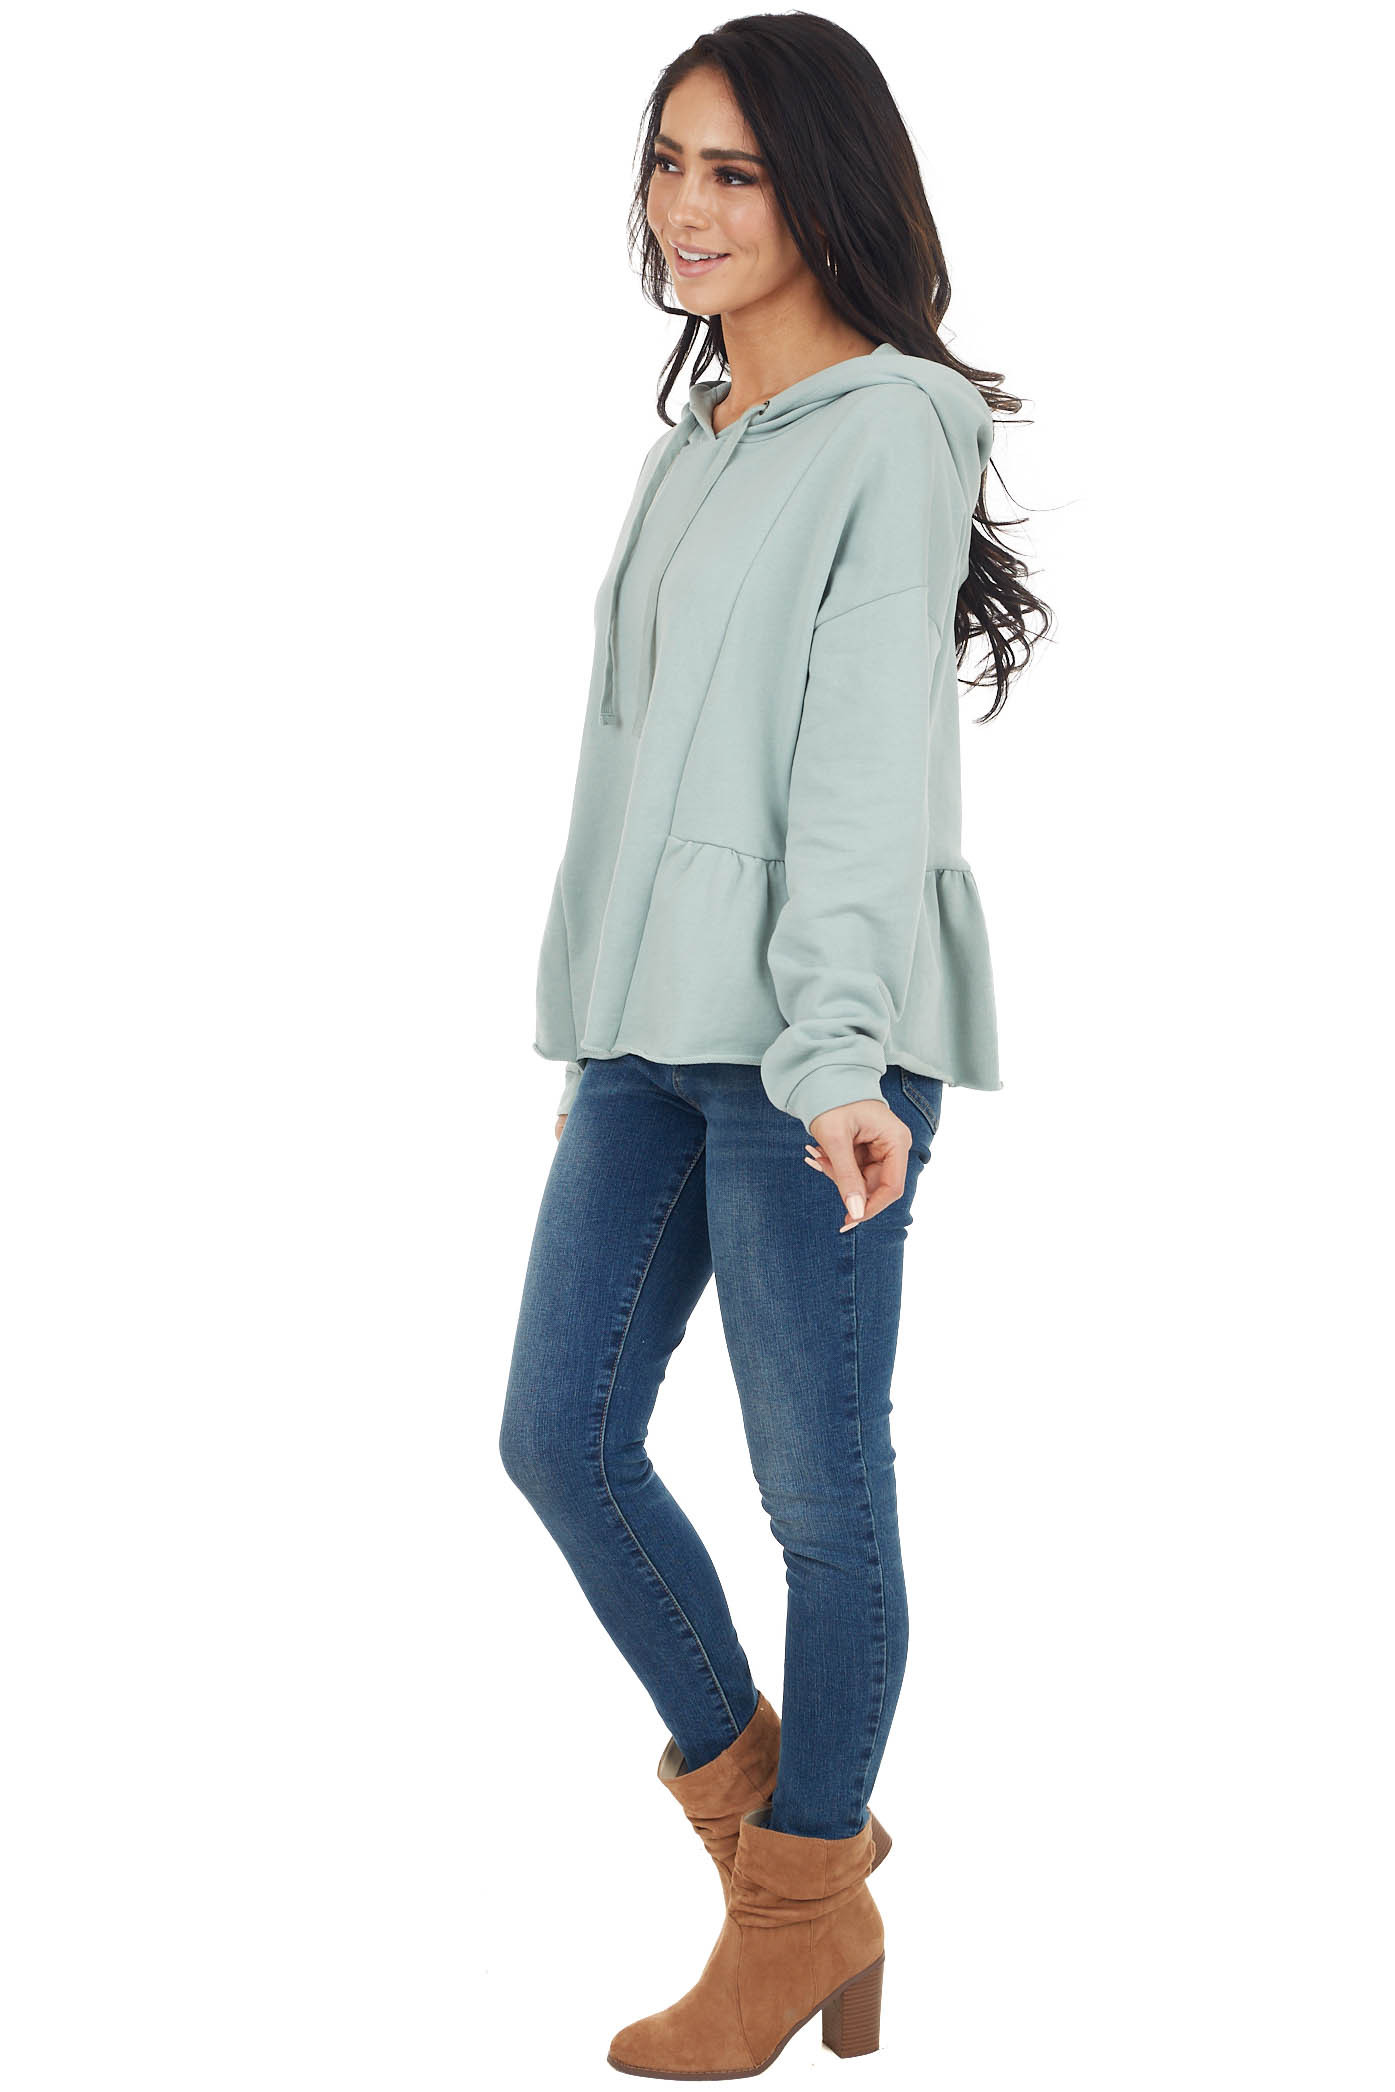 Sage Hooded Top with Drawstrings and Peplum Detail